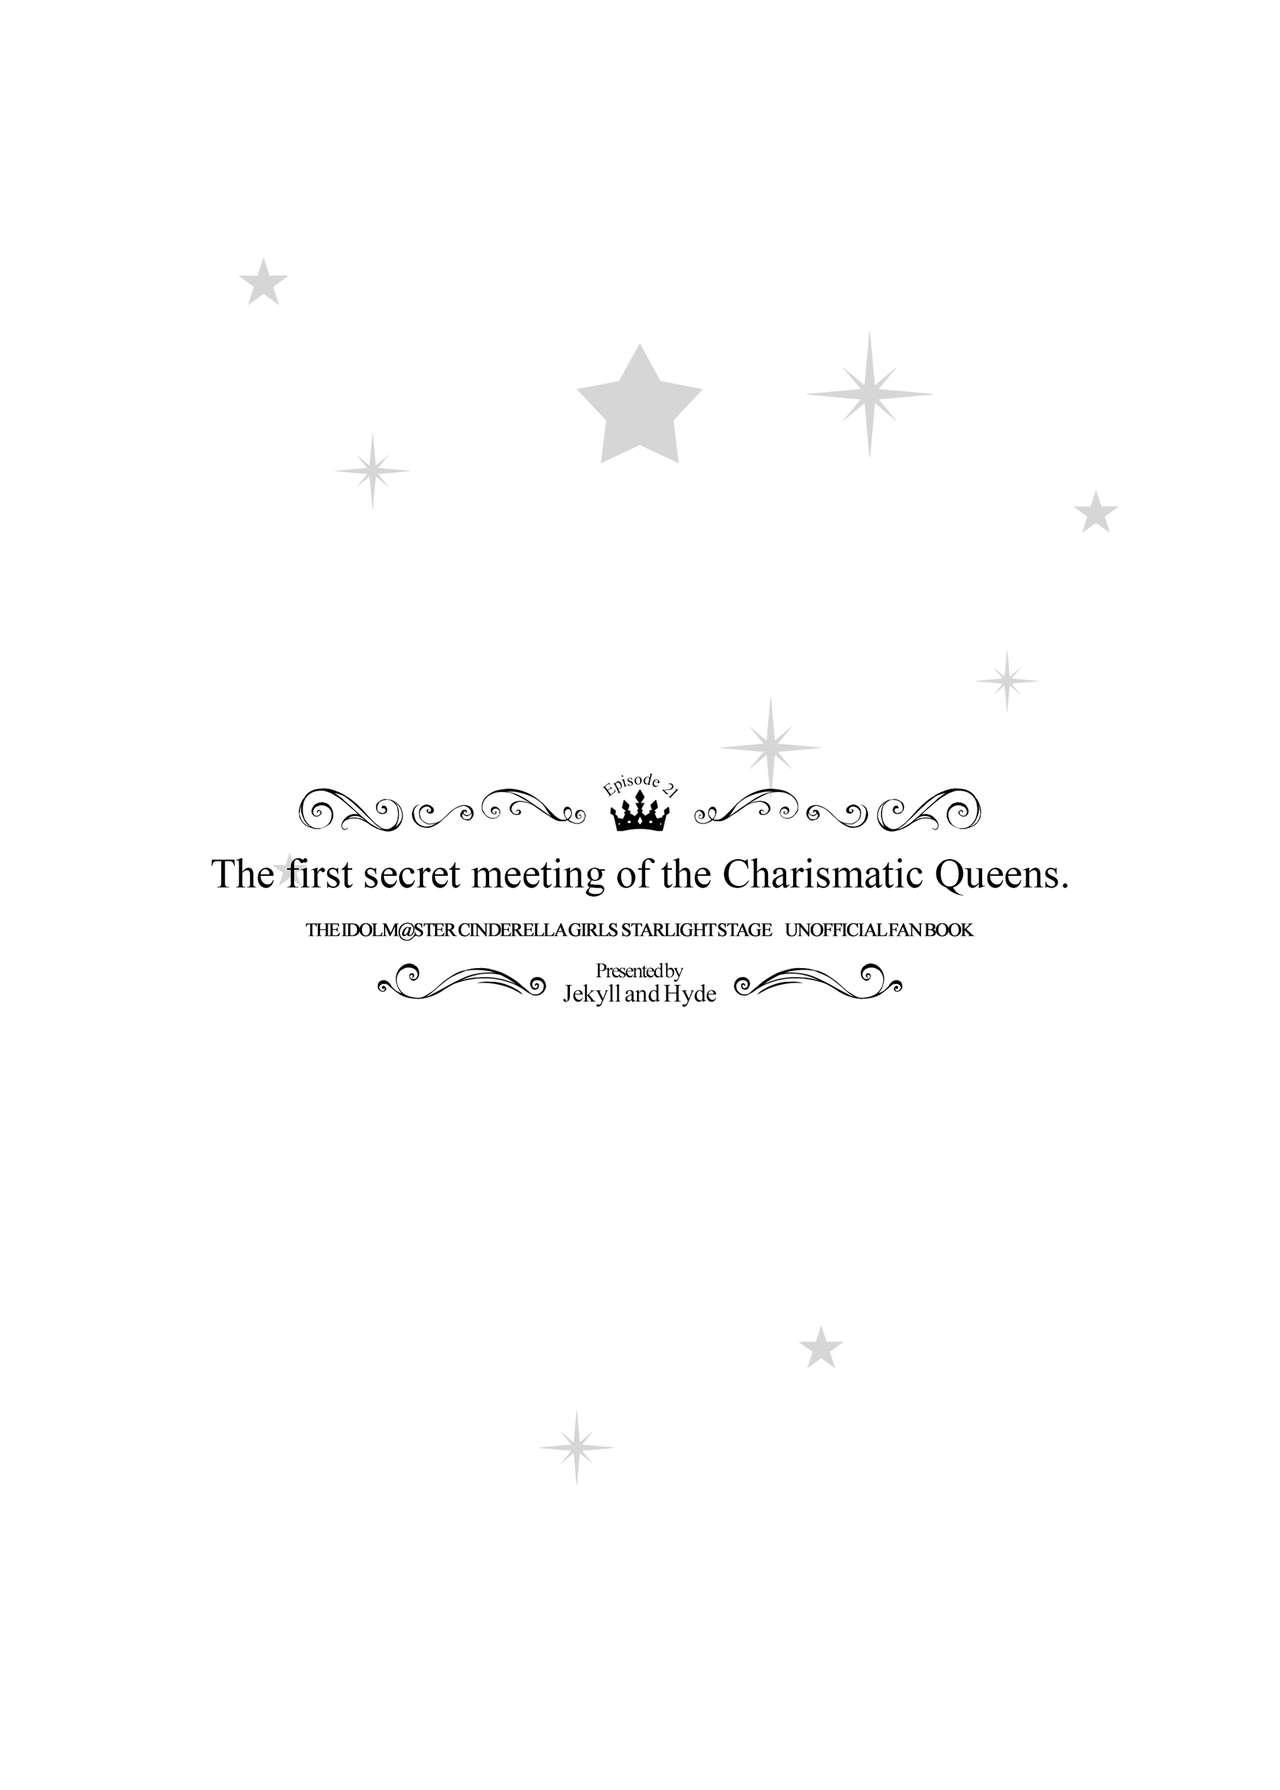 The first secret meeting of the Charismatic Queens. 28